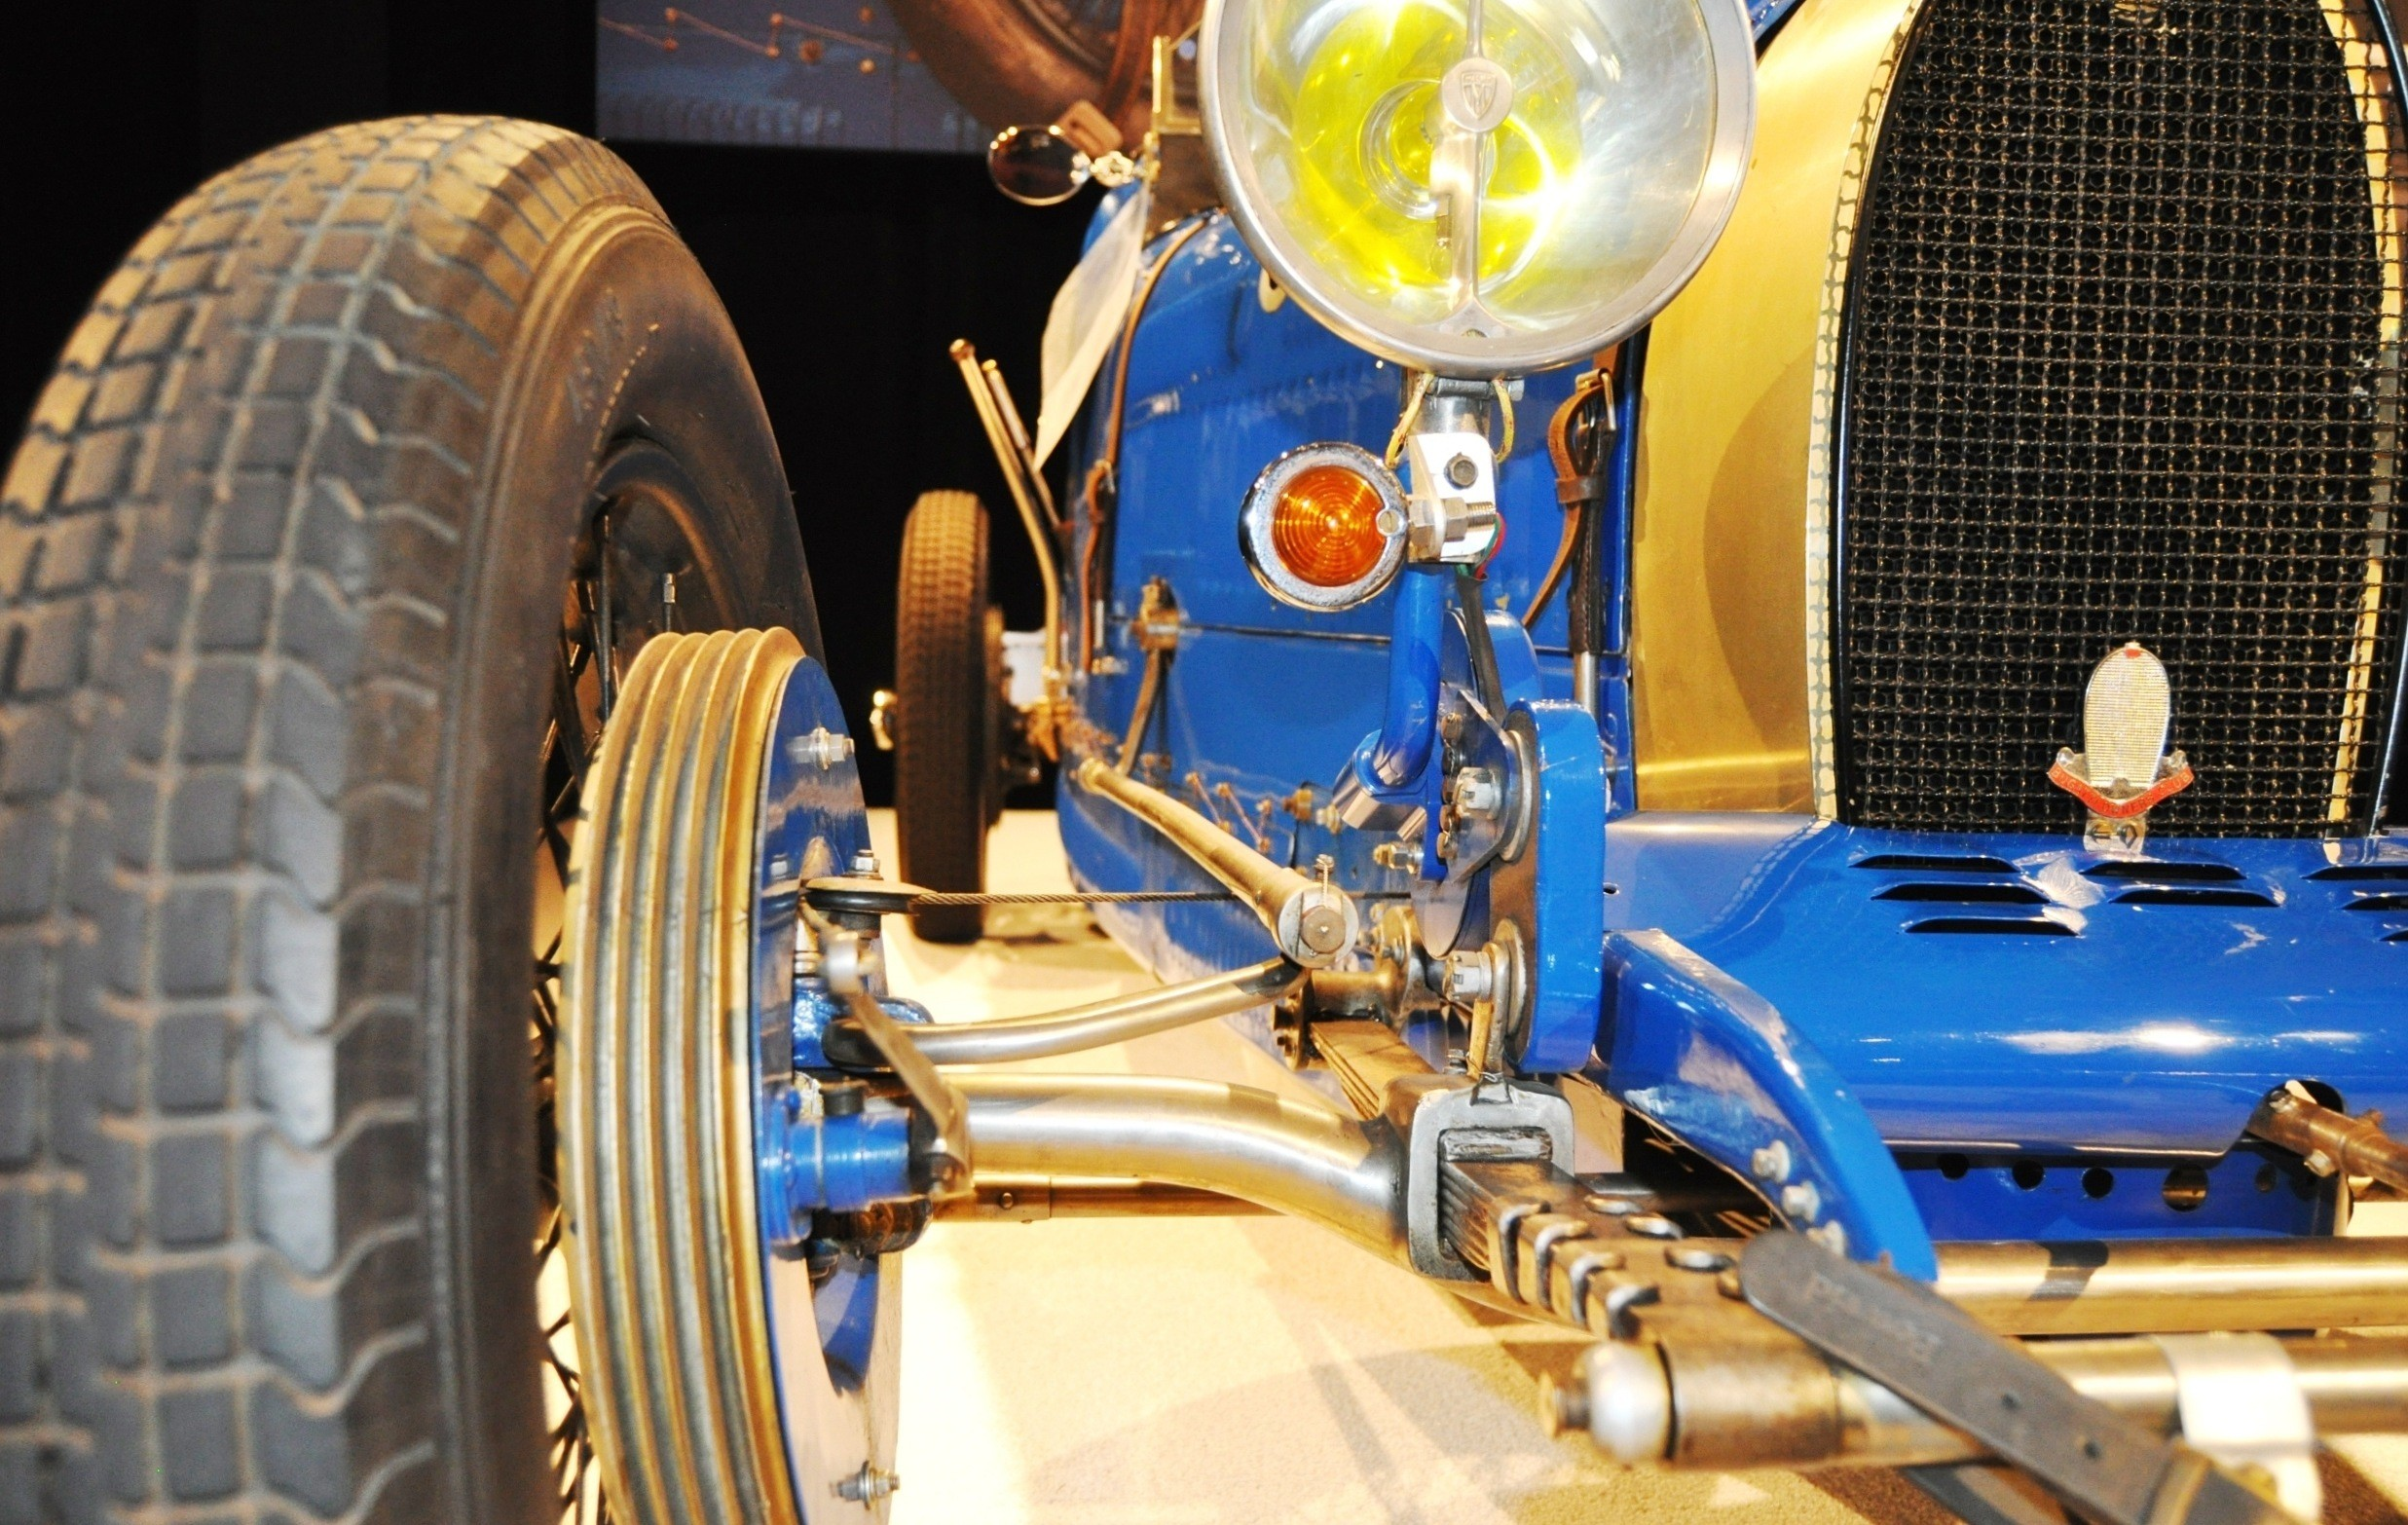 1928 Bugatti Type 37A Grand Prix Supercharged-- $962,000 at RM Auctions Amelia 2014 -- 45 Original Photos 37